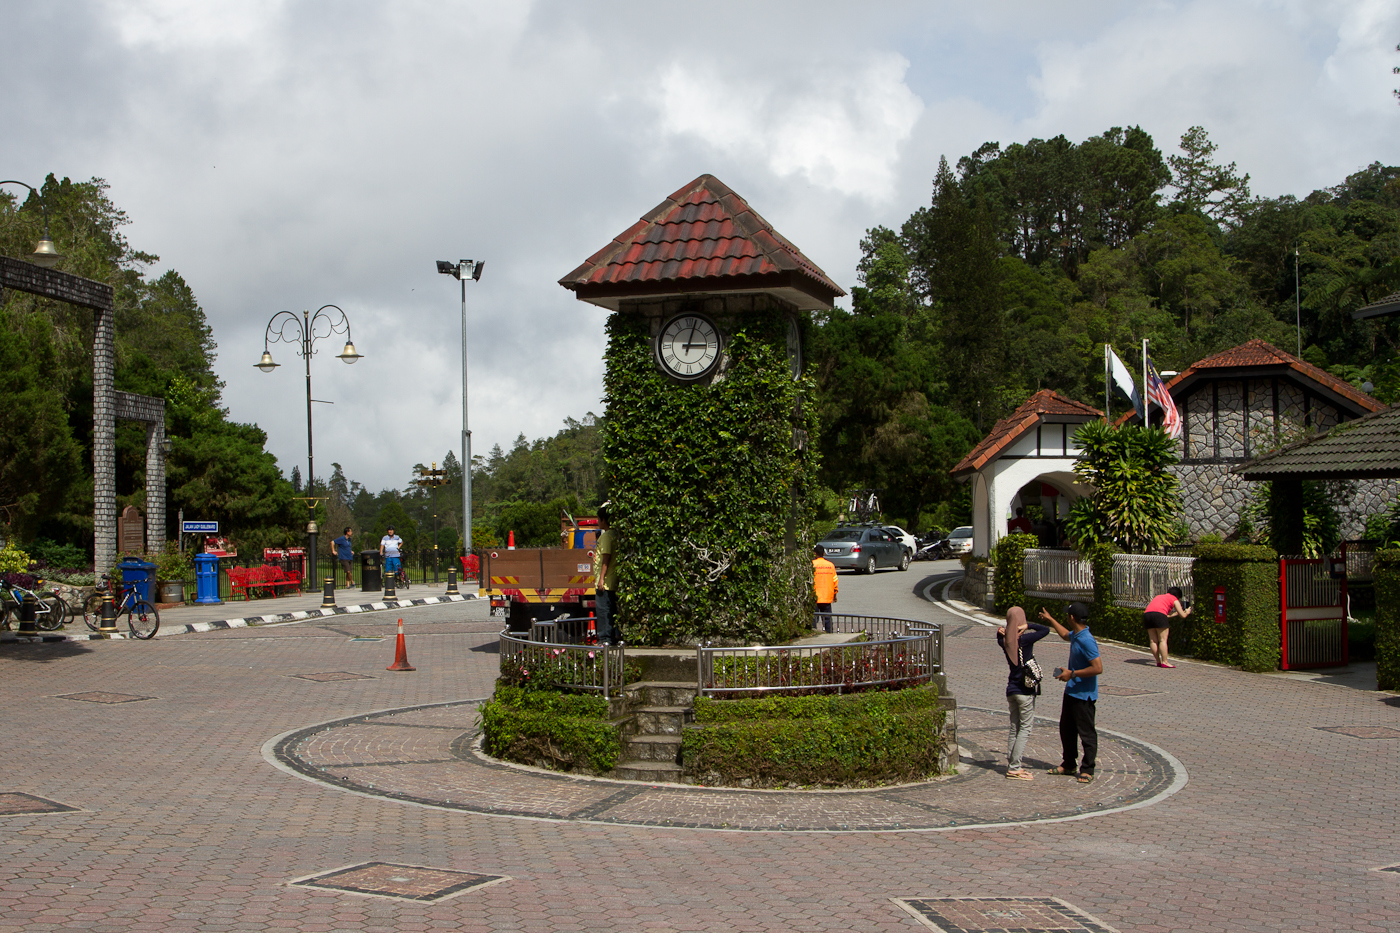 Town Square at Fraser's Hill. Fraser's Hill is home to the annual Malaysian Bird Race and is a hill station created by the British in 1890.